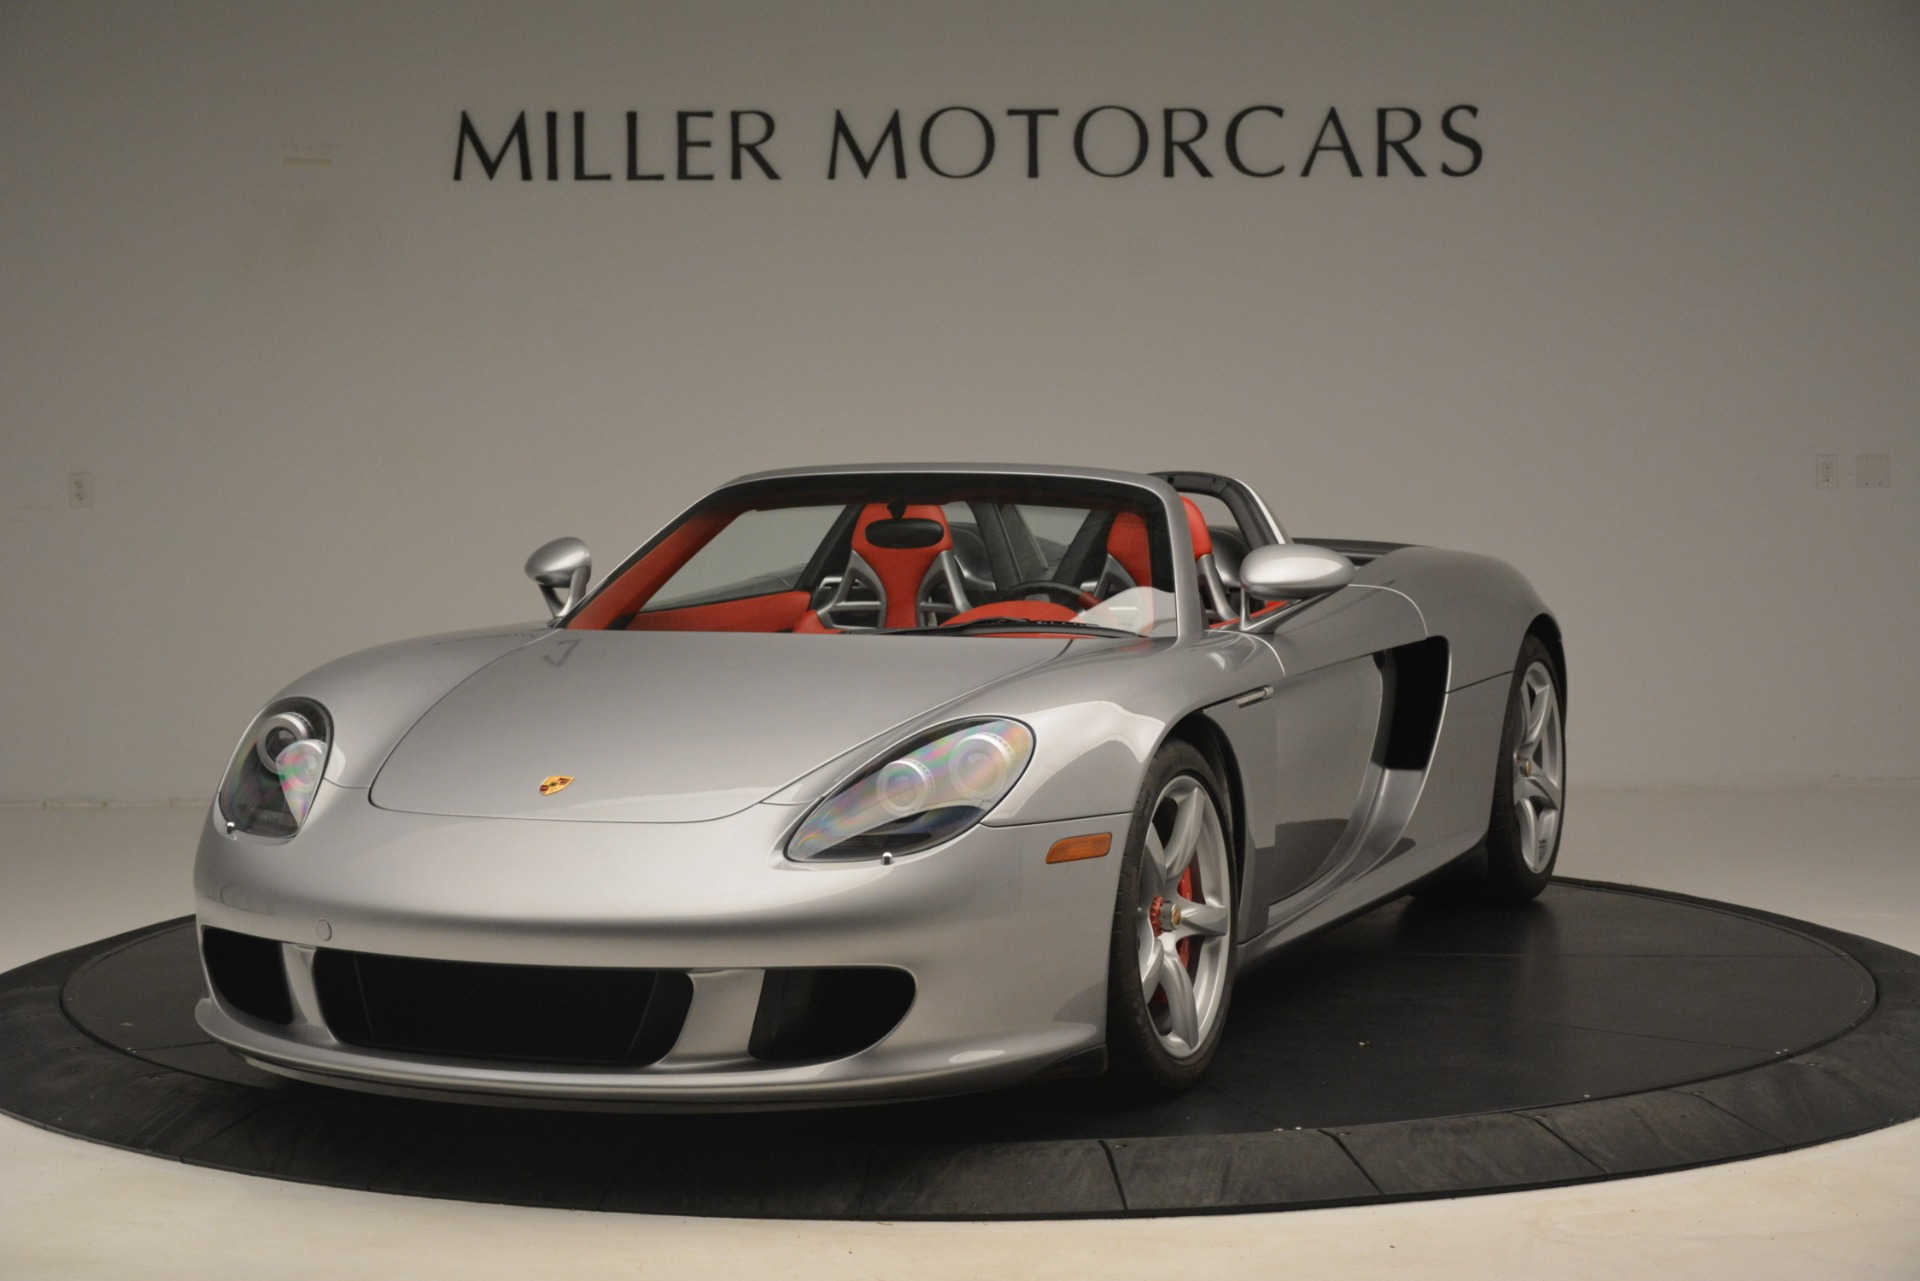 Used 2005 Porsche Carrera GT for sale Sold at Rolls-Royce Motor Cars Greenwich in Greenwich CT 06830 1